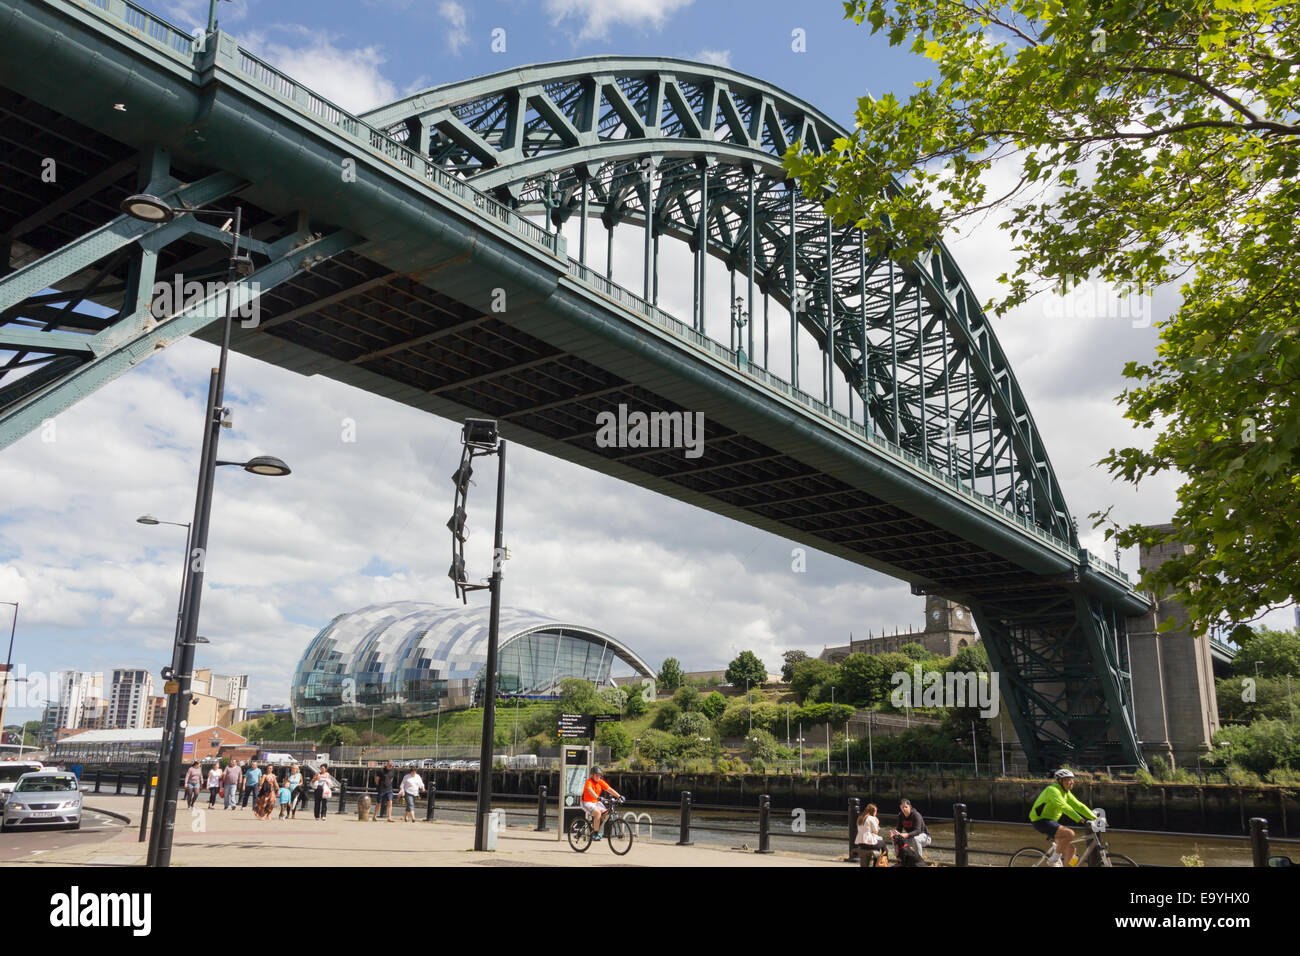 Newcastle Tyne Bridge, dating from 1928, towering over  the revitalised Quayside area and framing the postmodern Stock Photo